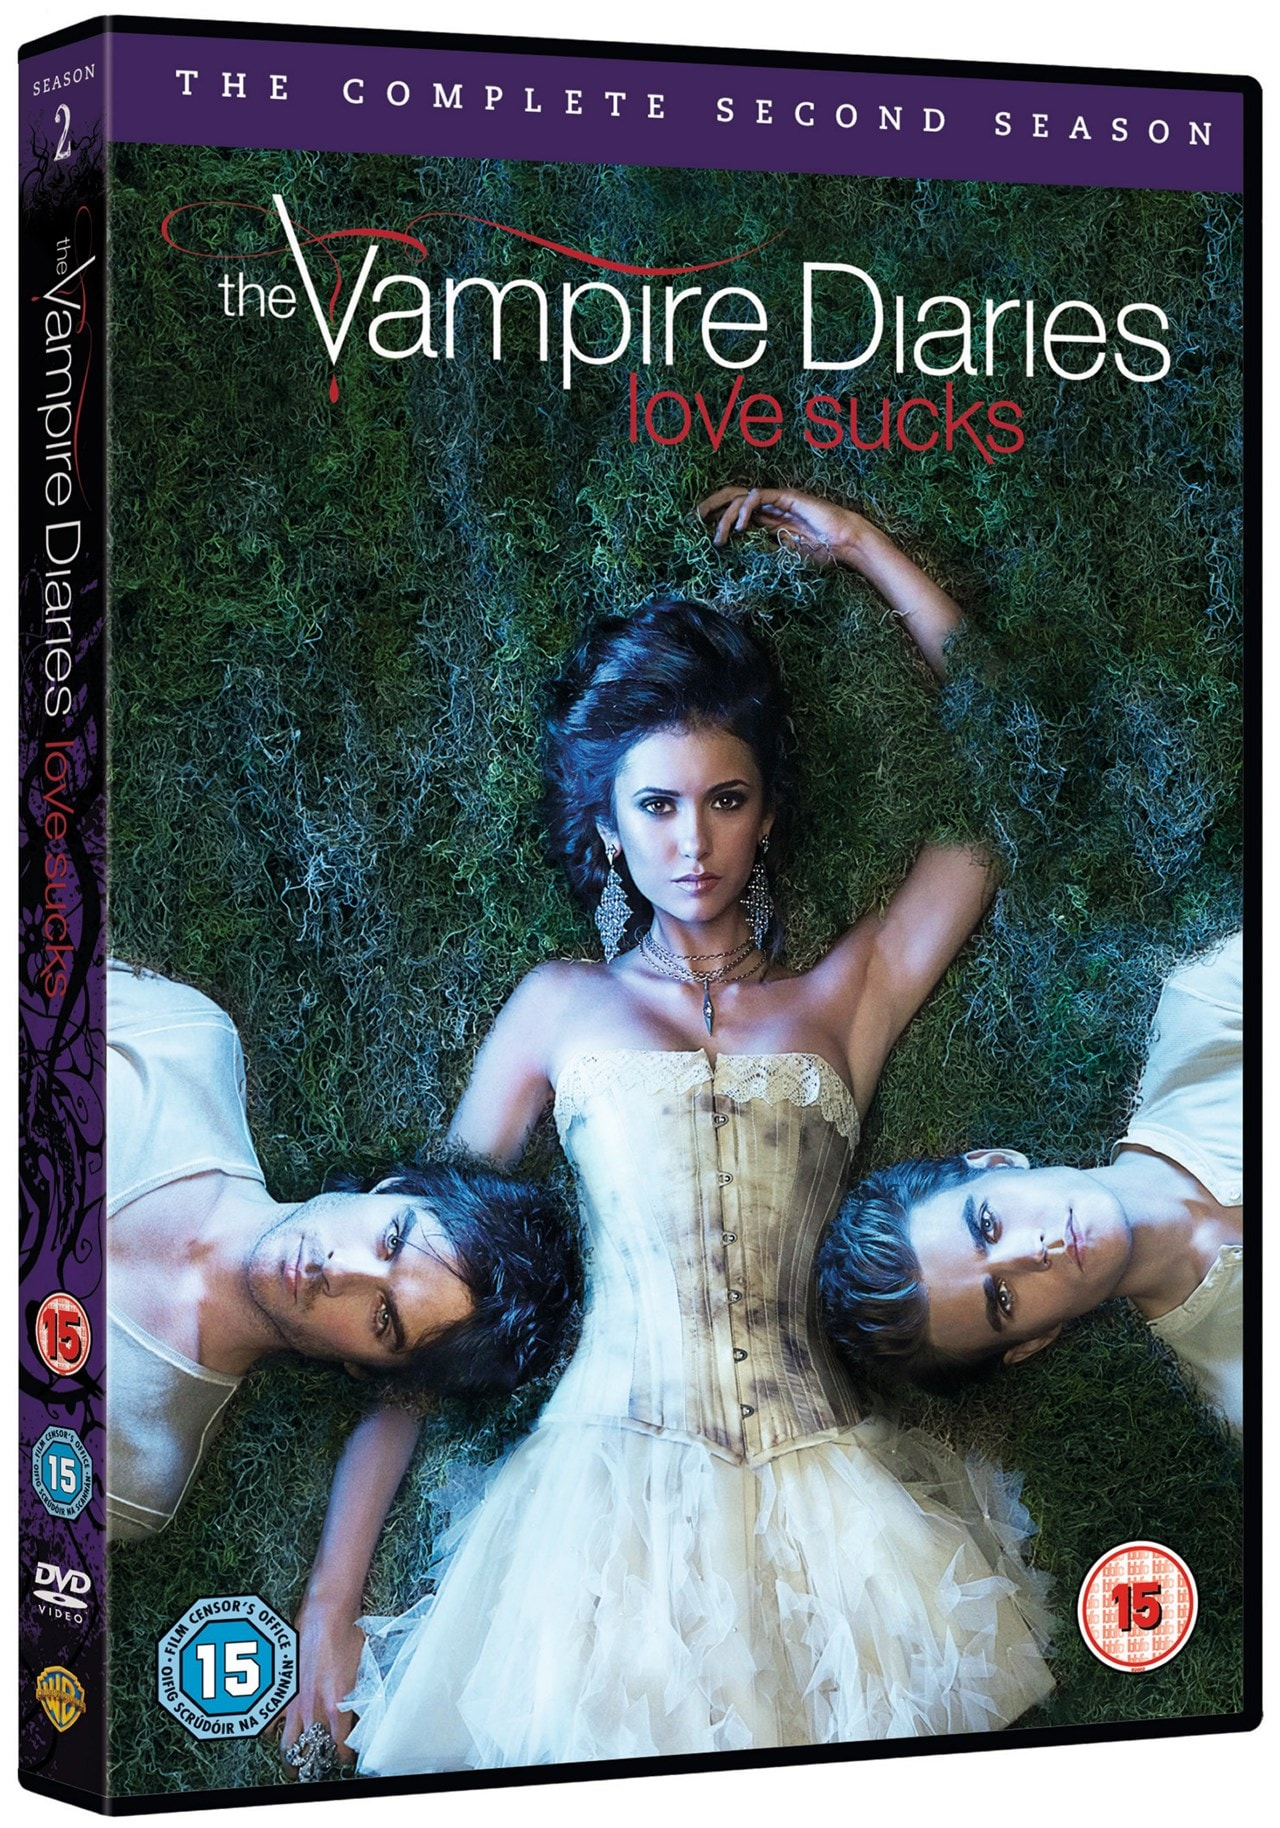 The Vampire Diaries: The Complete Second Season - 2